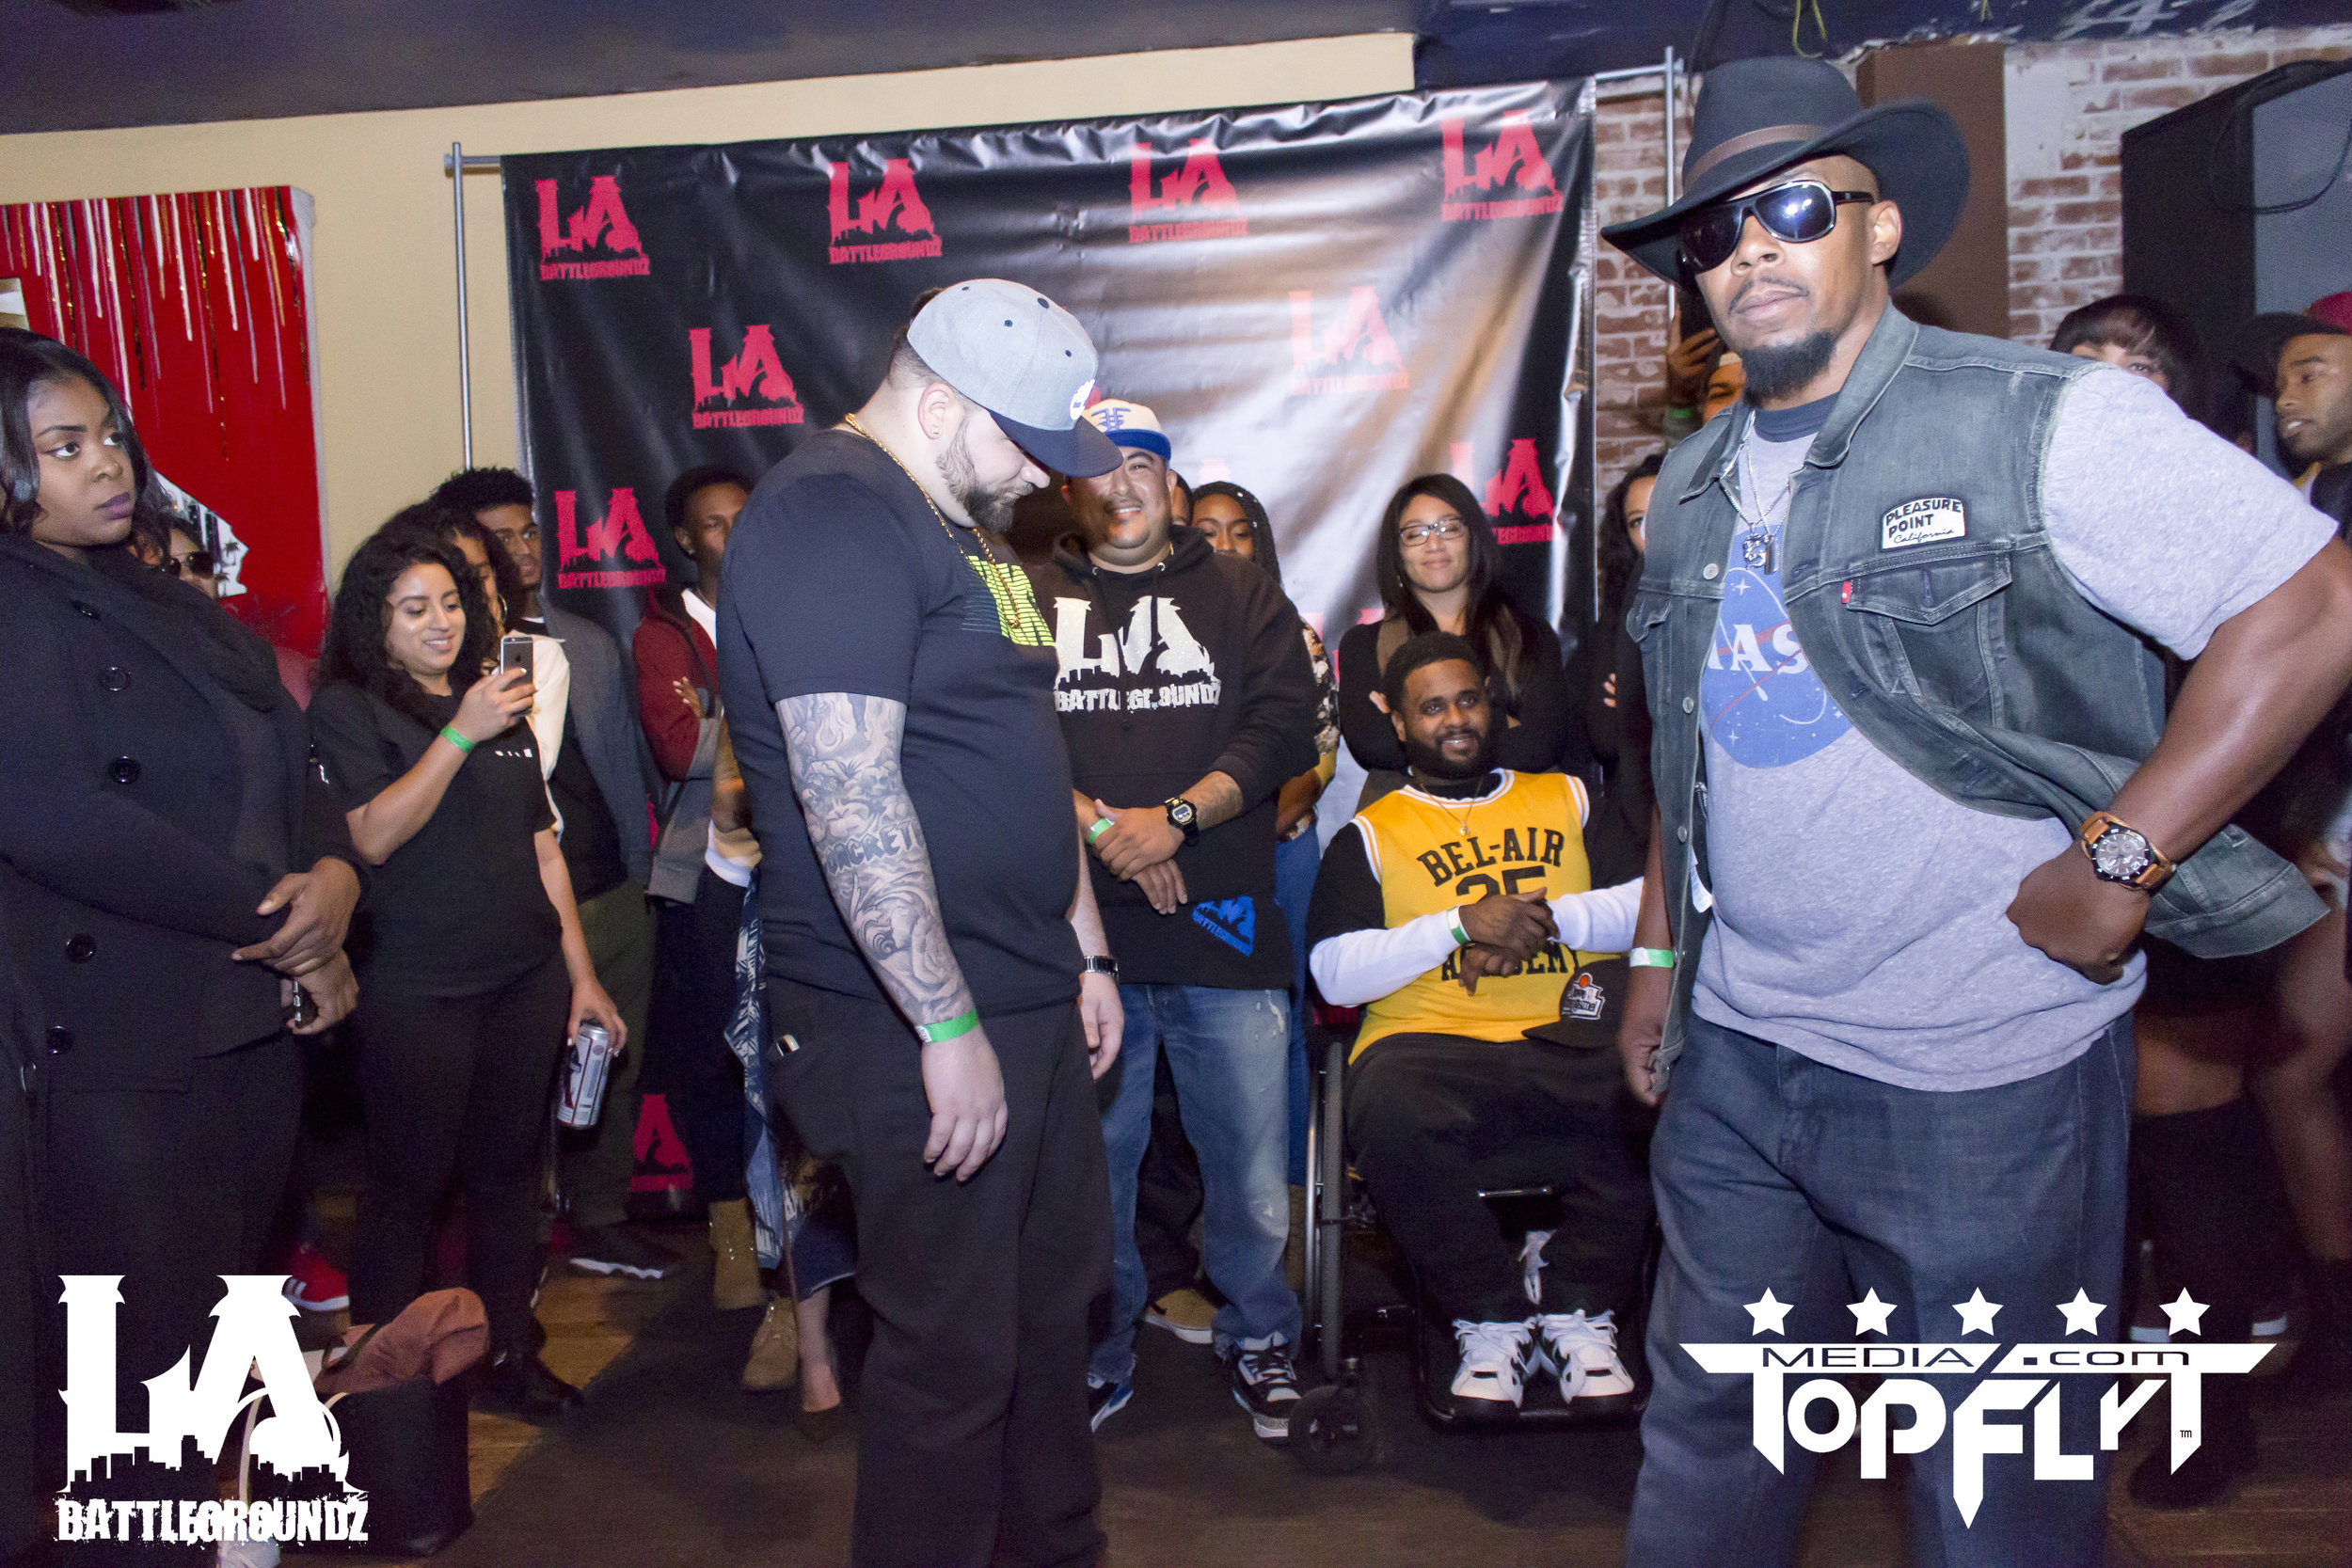 LA Battlegroundz - Decembarfest - The Christening_53.jpg